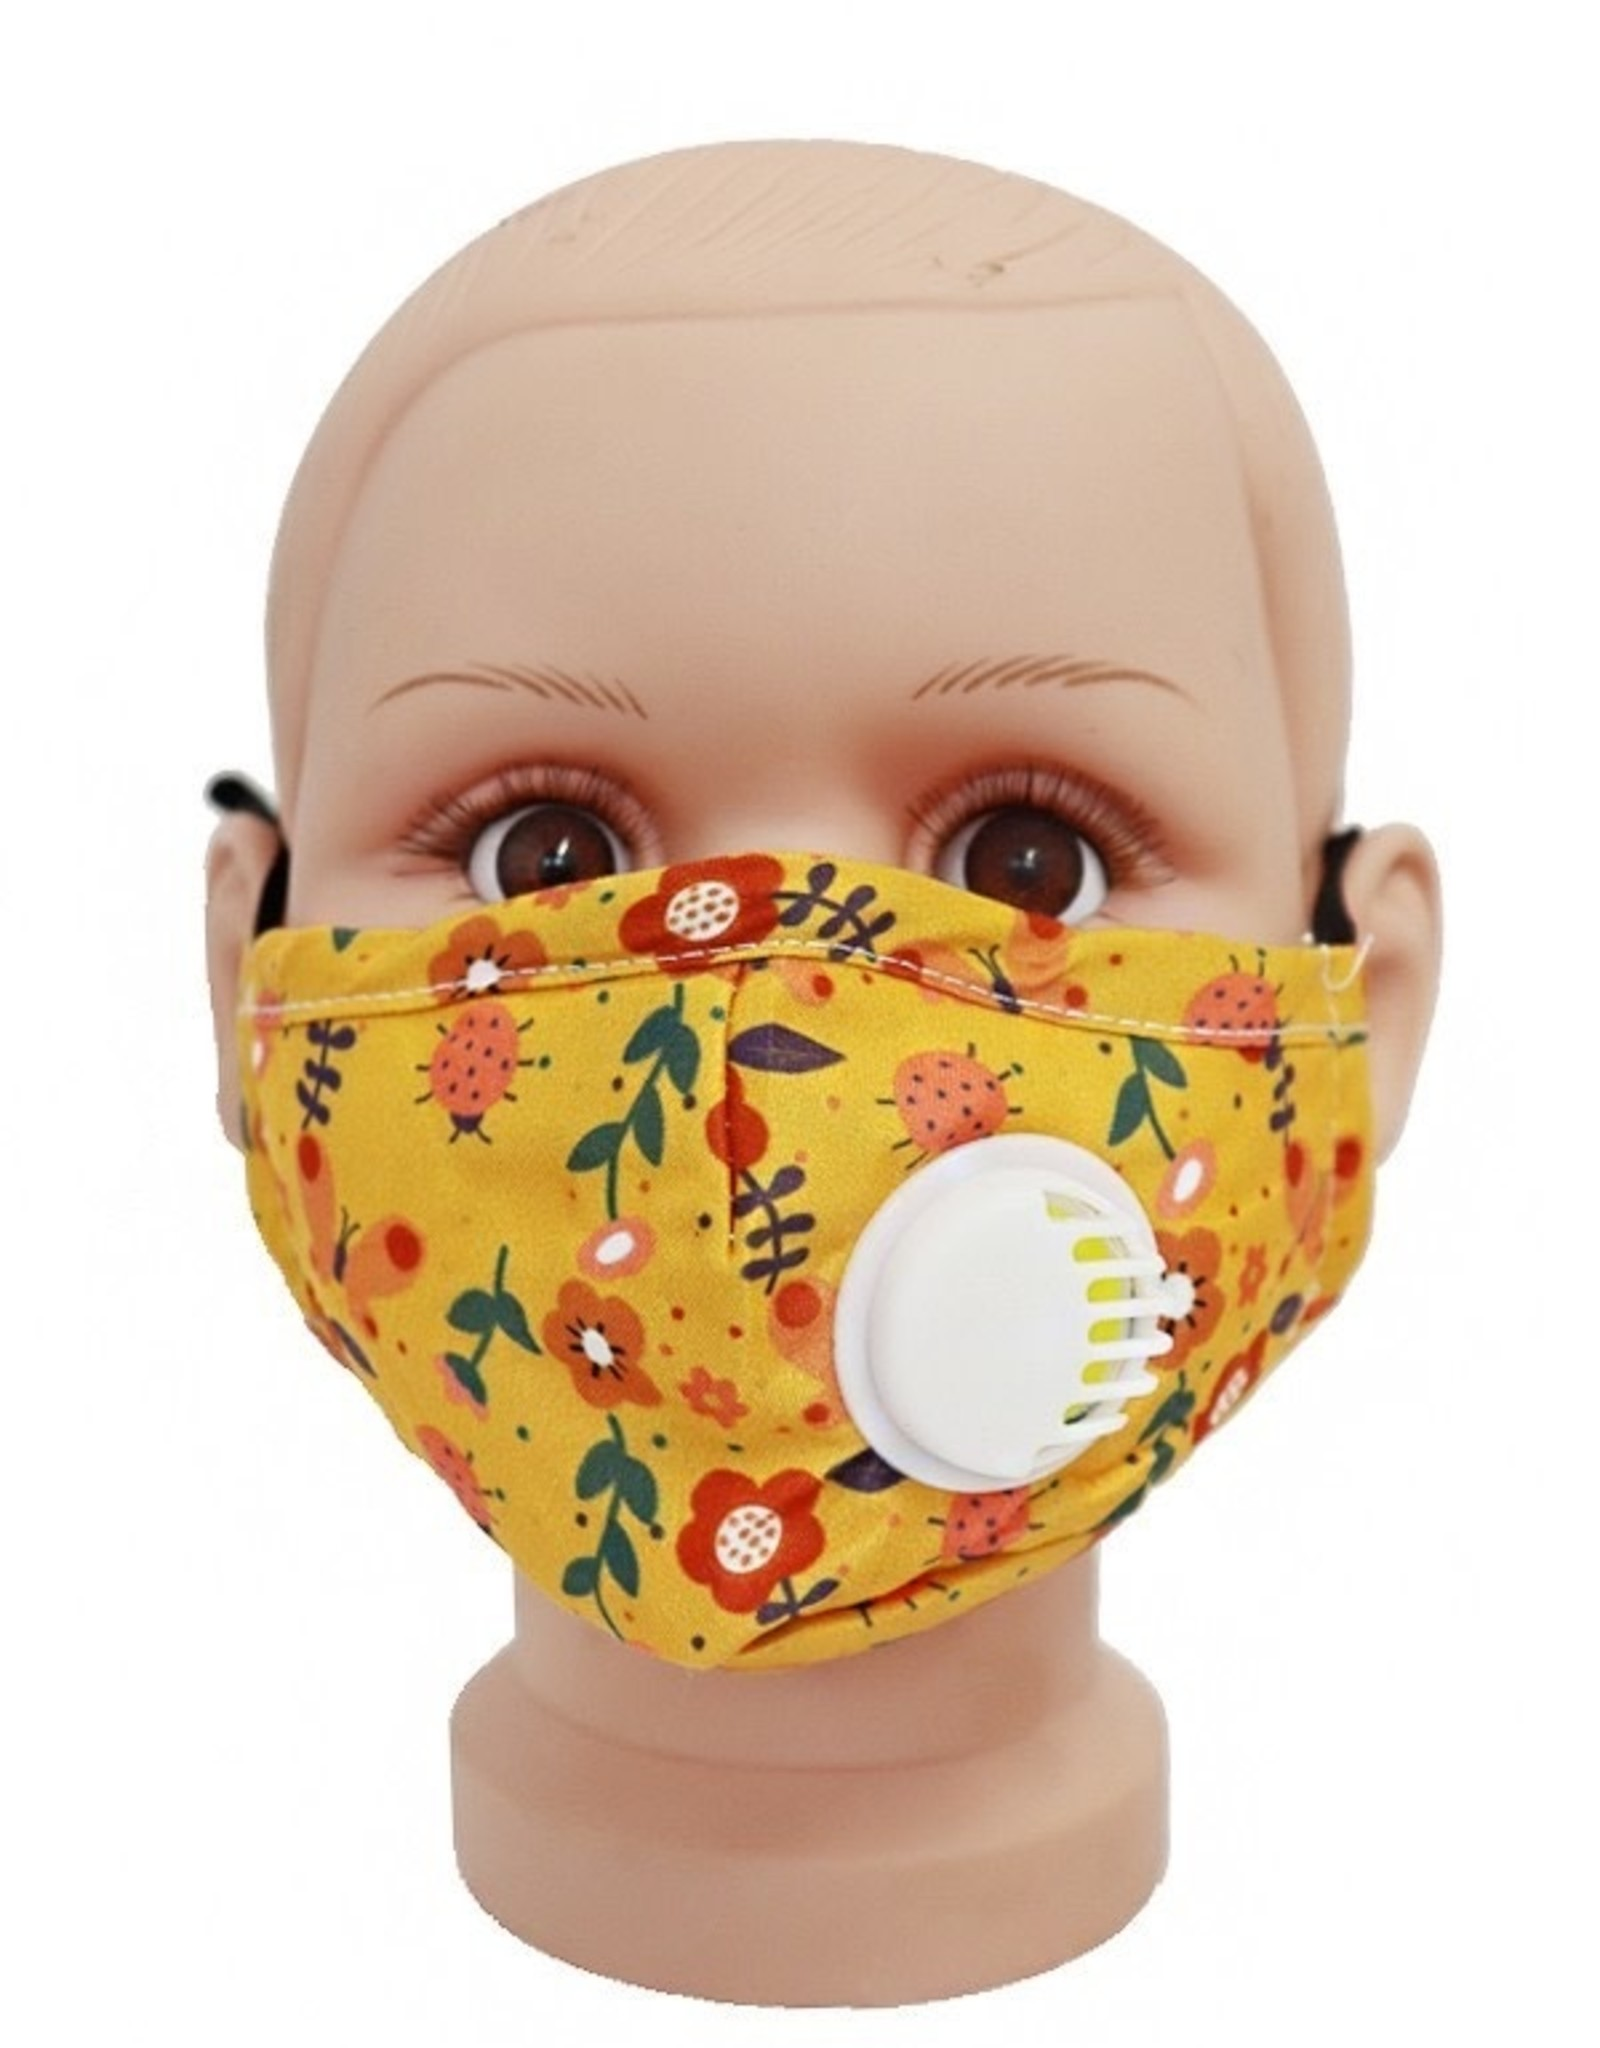 FACE MASK COTTON EZ BREATHE RESPIRATOR W/ FILTER POCKET CHILD GOLD FLOWERS